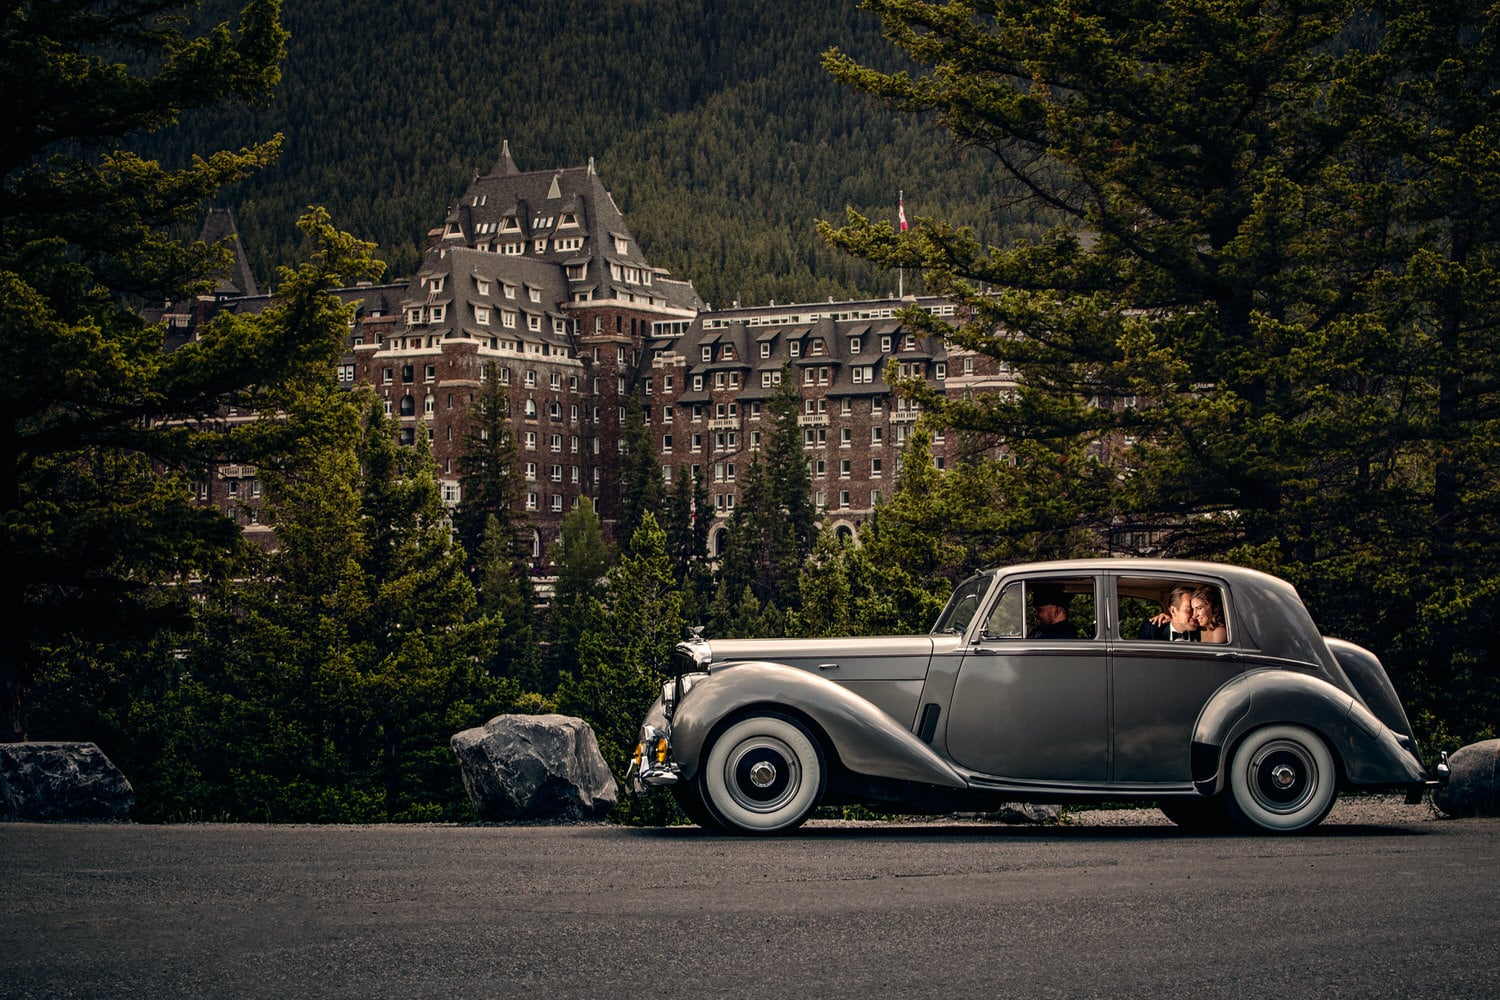 The Banff Springs Hotel with a bride and groom inside a luxury Bentley vehicle